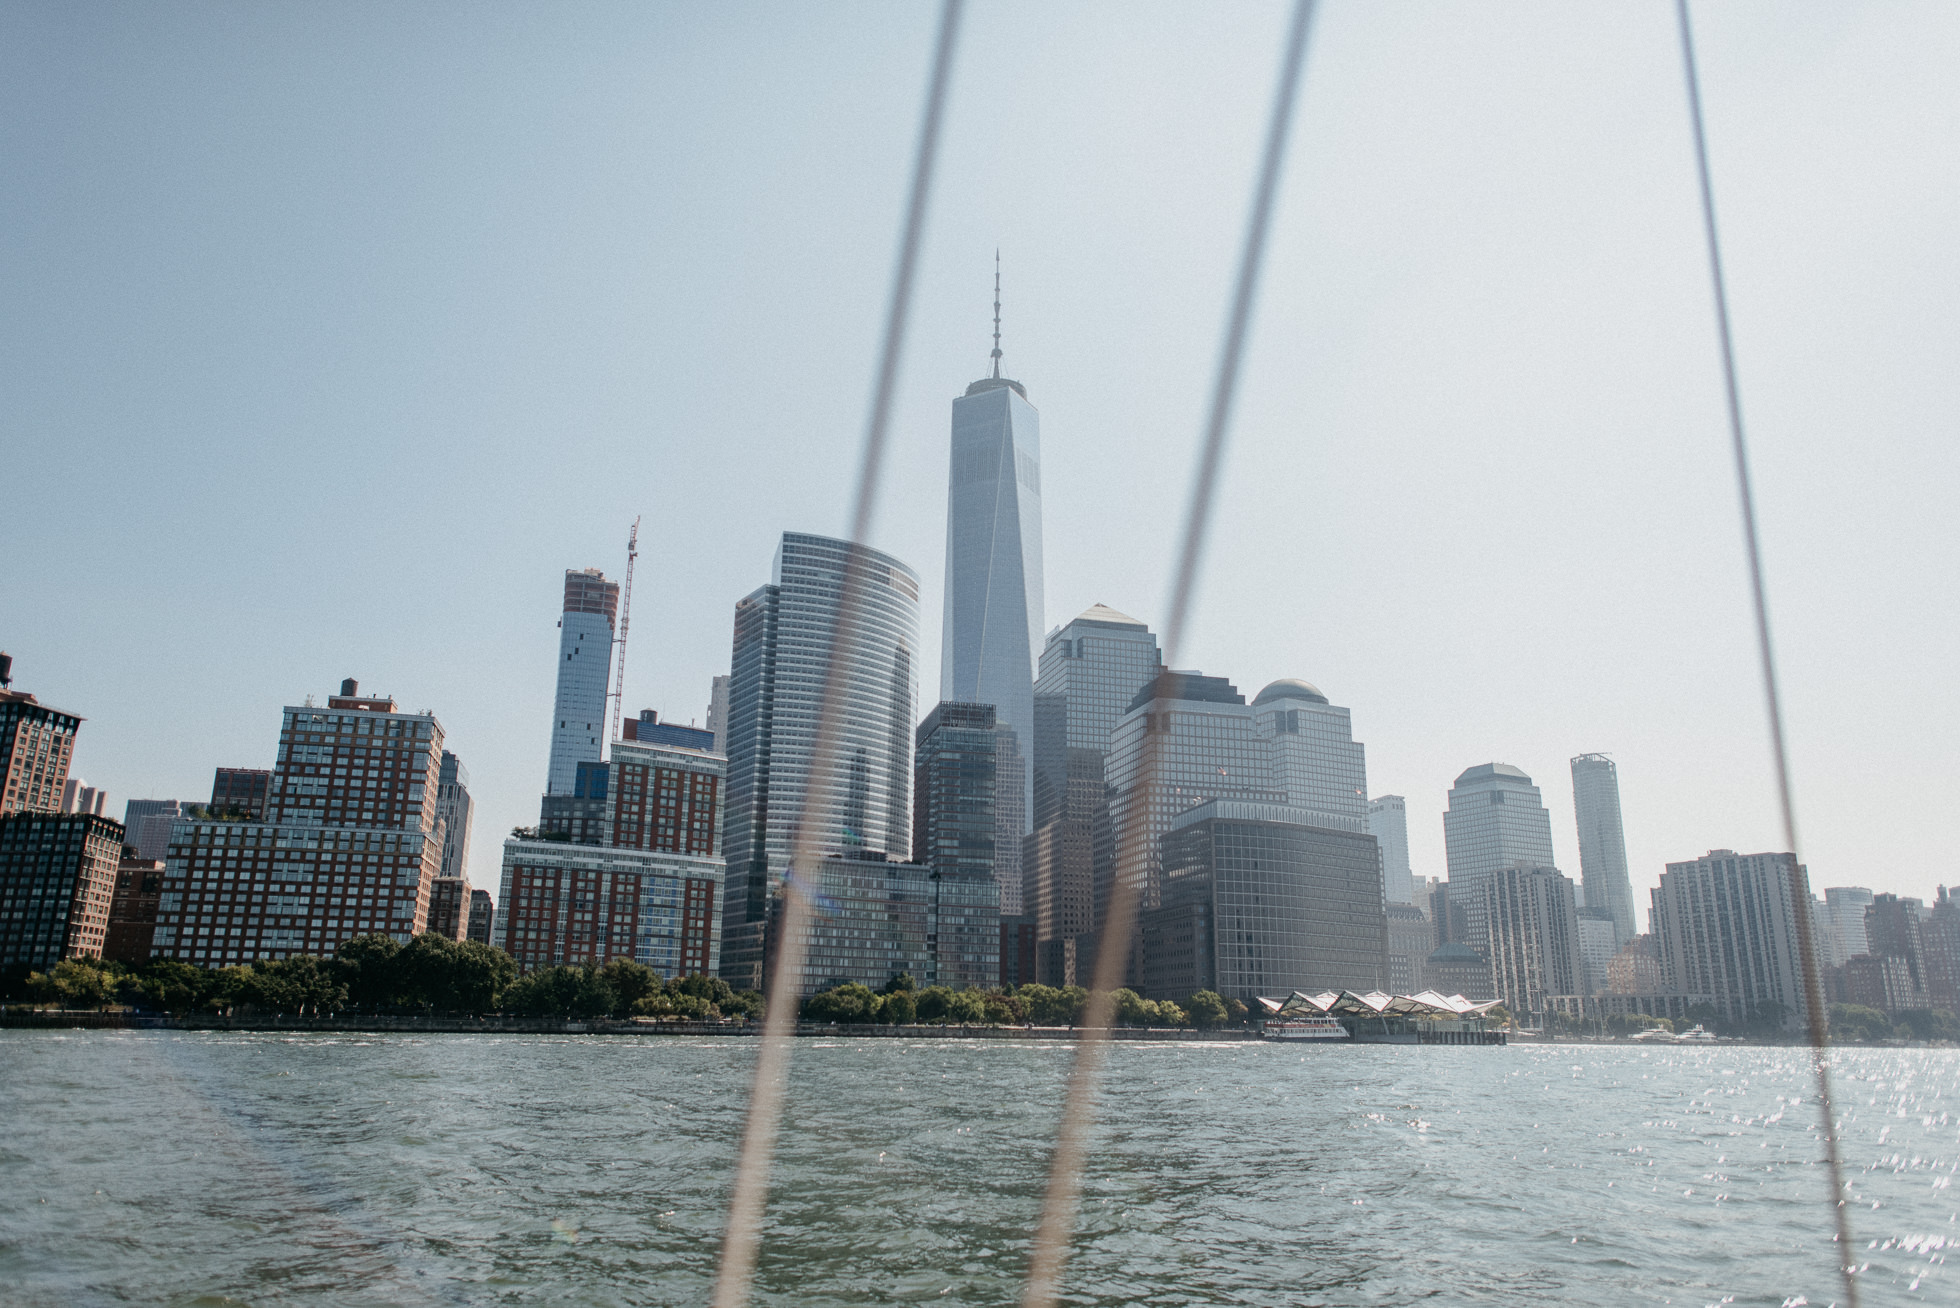 view of world trade center from harlem river